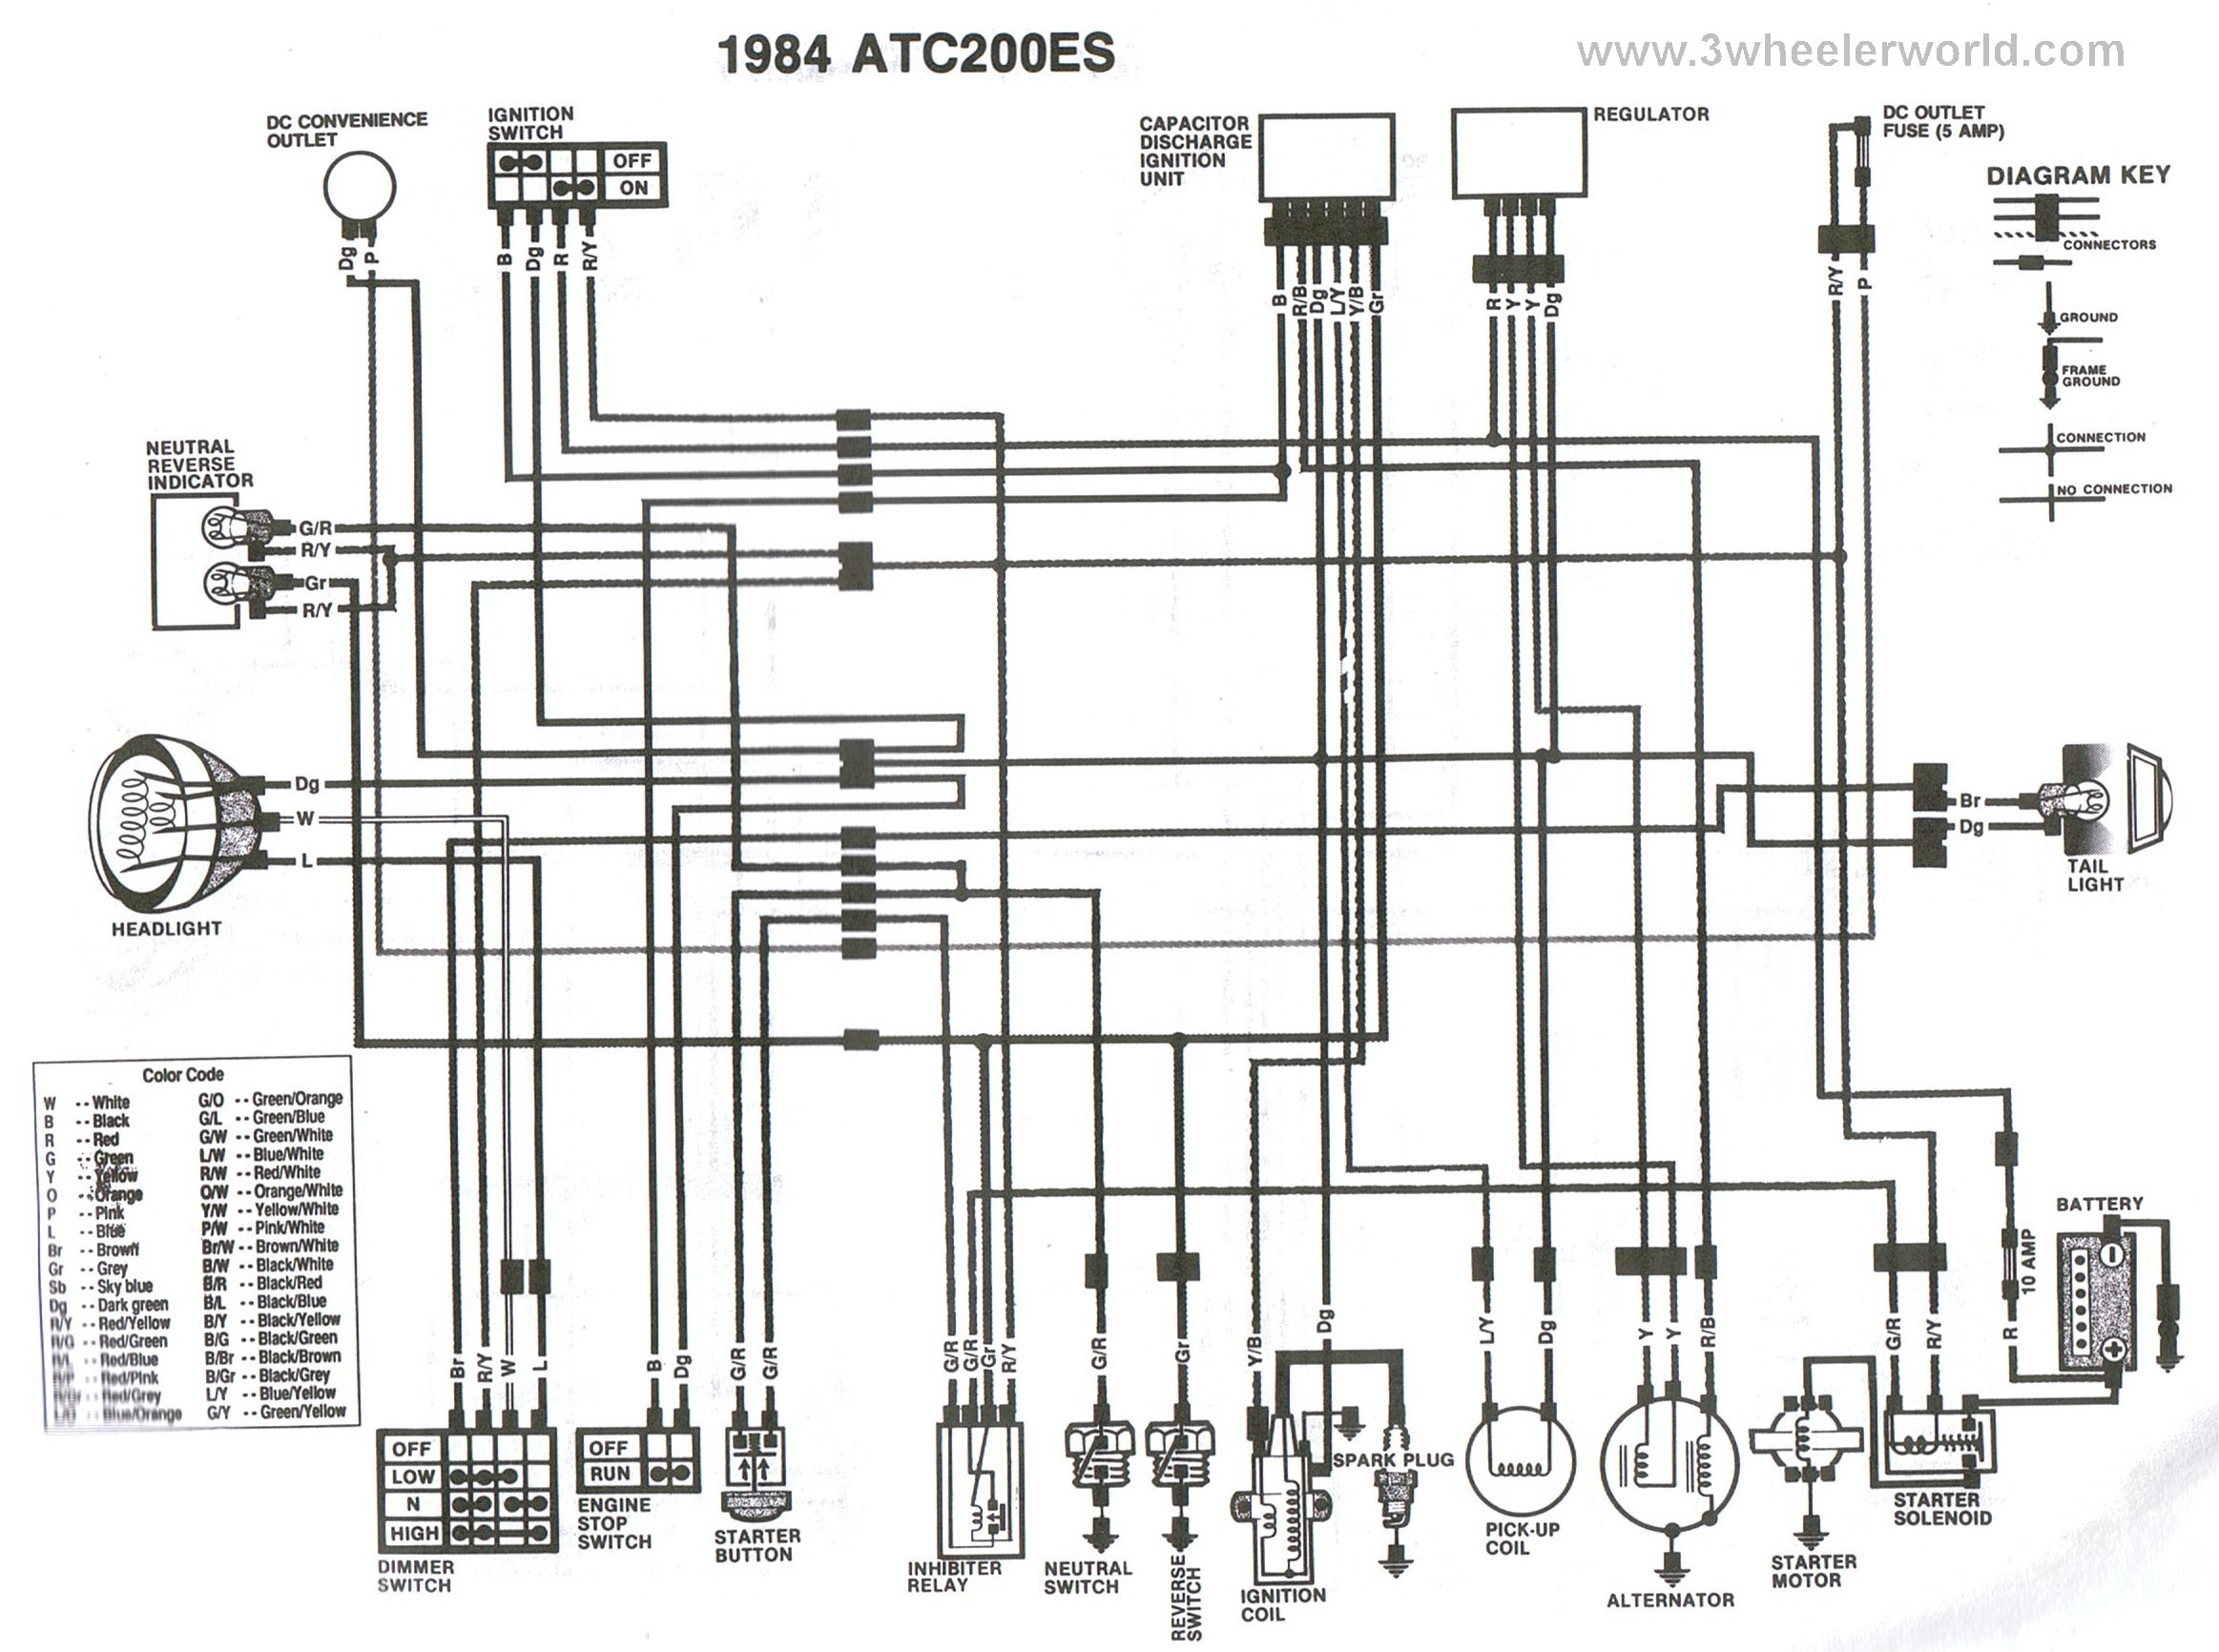 ATC200ESx84 3 wheeler world tech help honda wiring diagrams 1984 honda big red 200es wiring diagram at sewacar.co